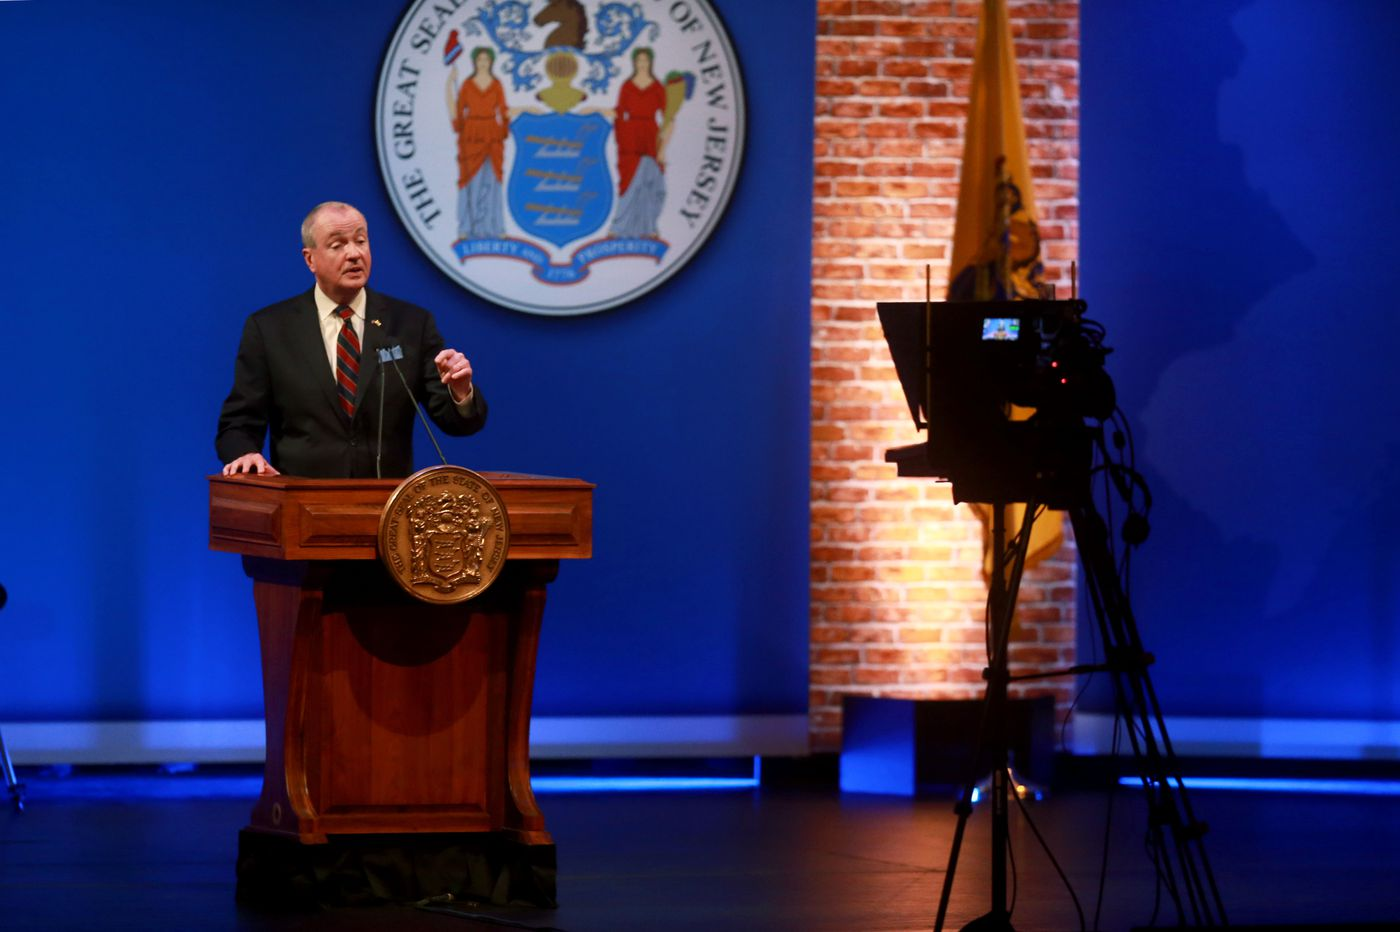 Gov. Phil Murphy touts New Jersey 'backbone' in promising a strong rebound from the pandemic